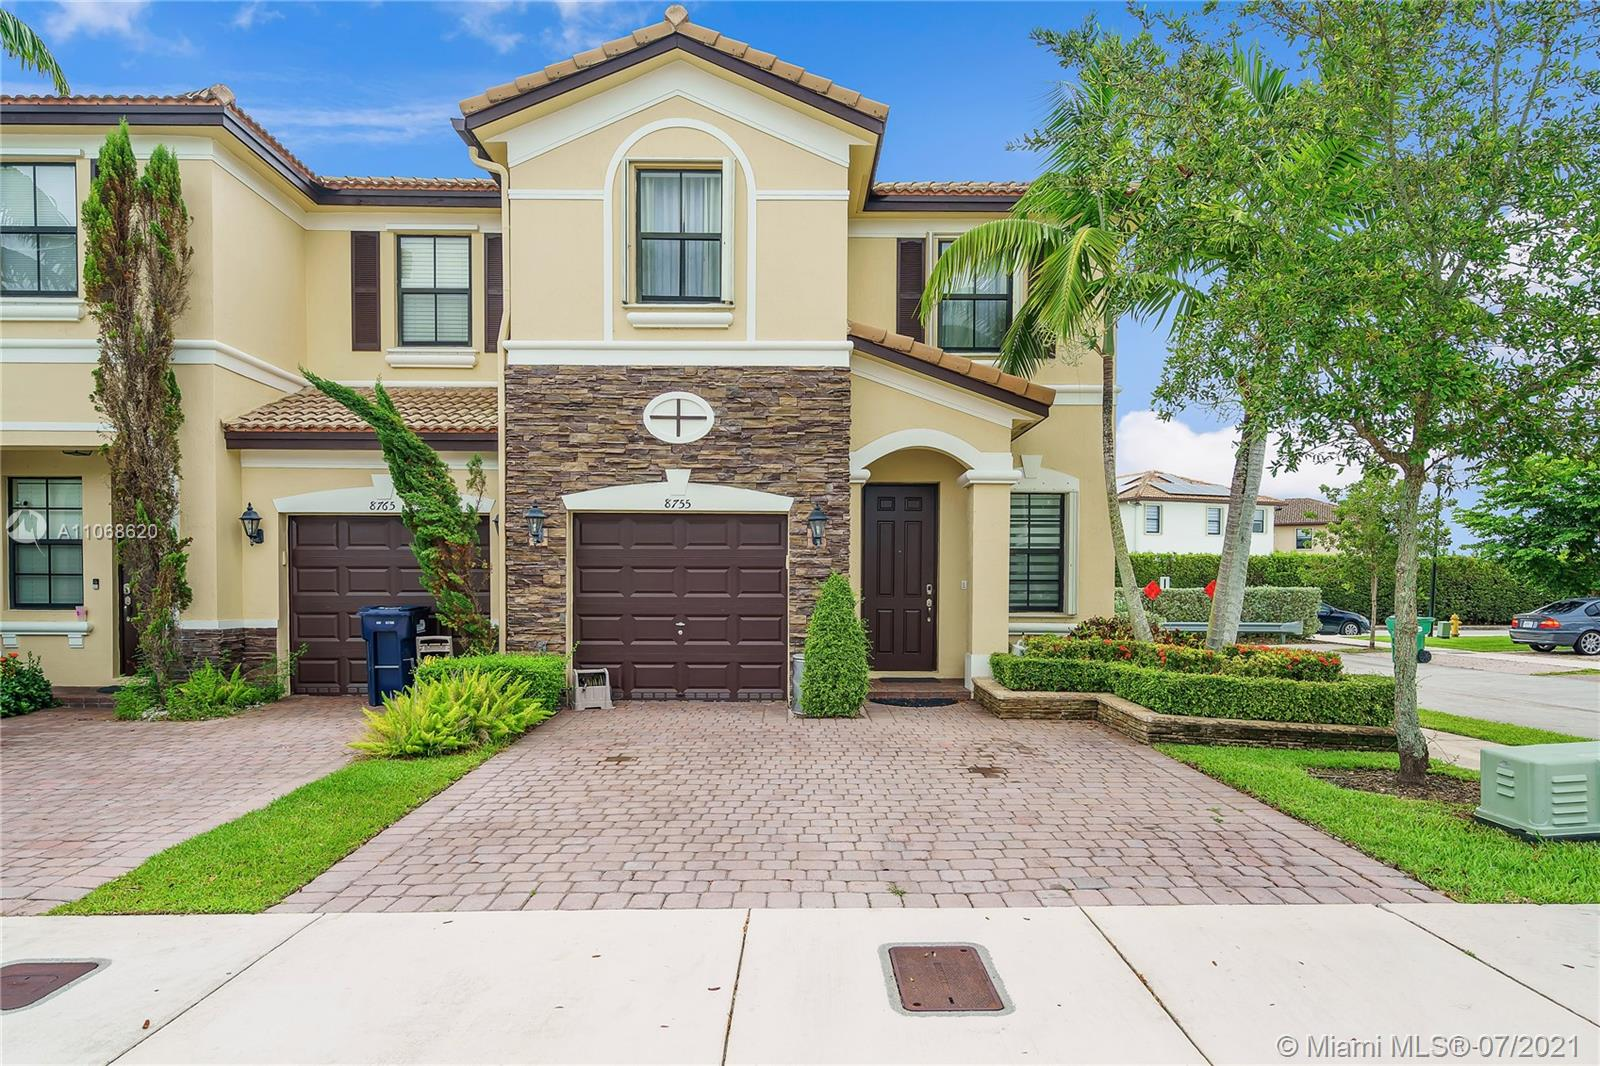 8755 NW 116th Ct, Doral, Florida 33178